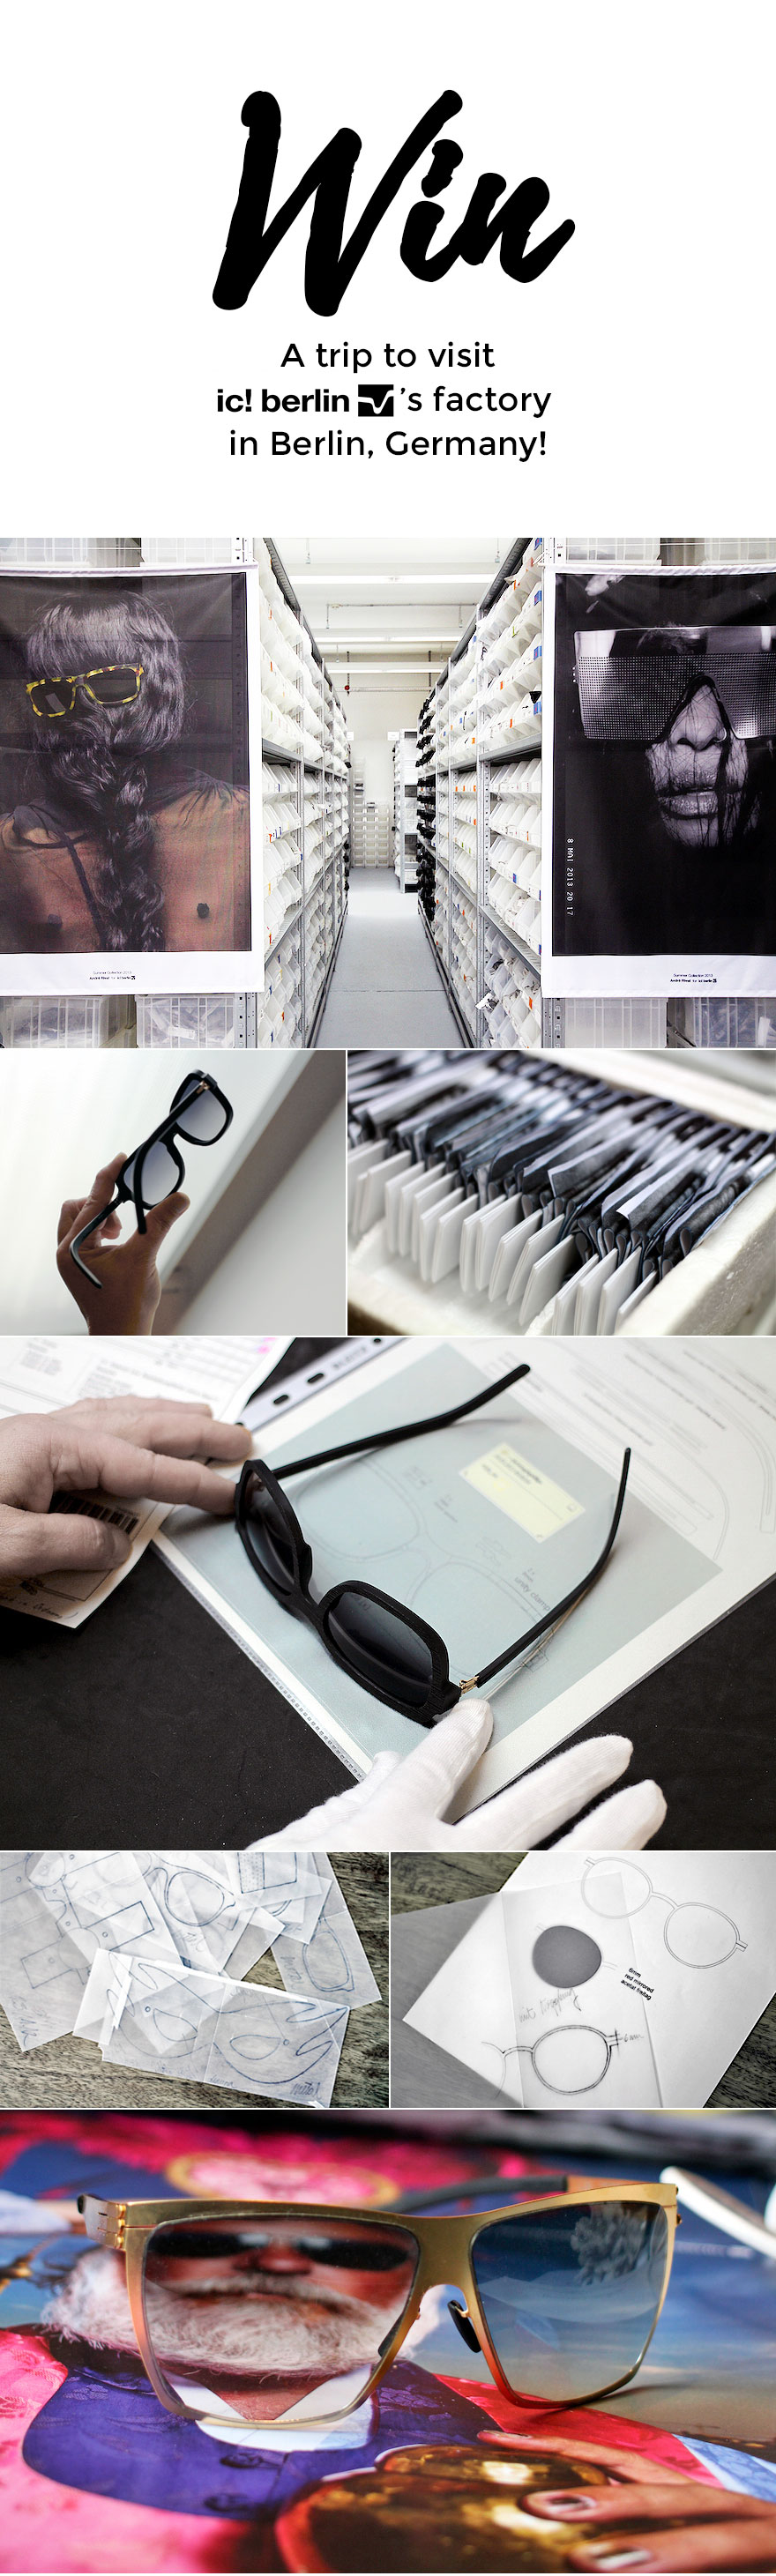 Win a trip to Berlin to visit ic! berlin's factory | Chinatown Optical